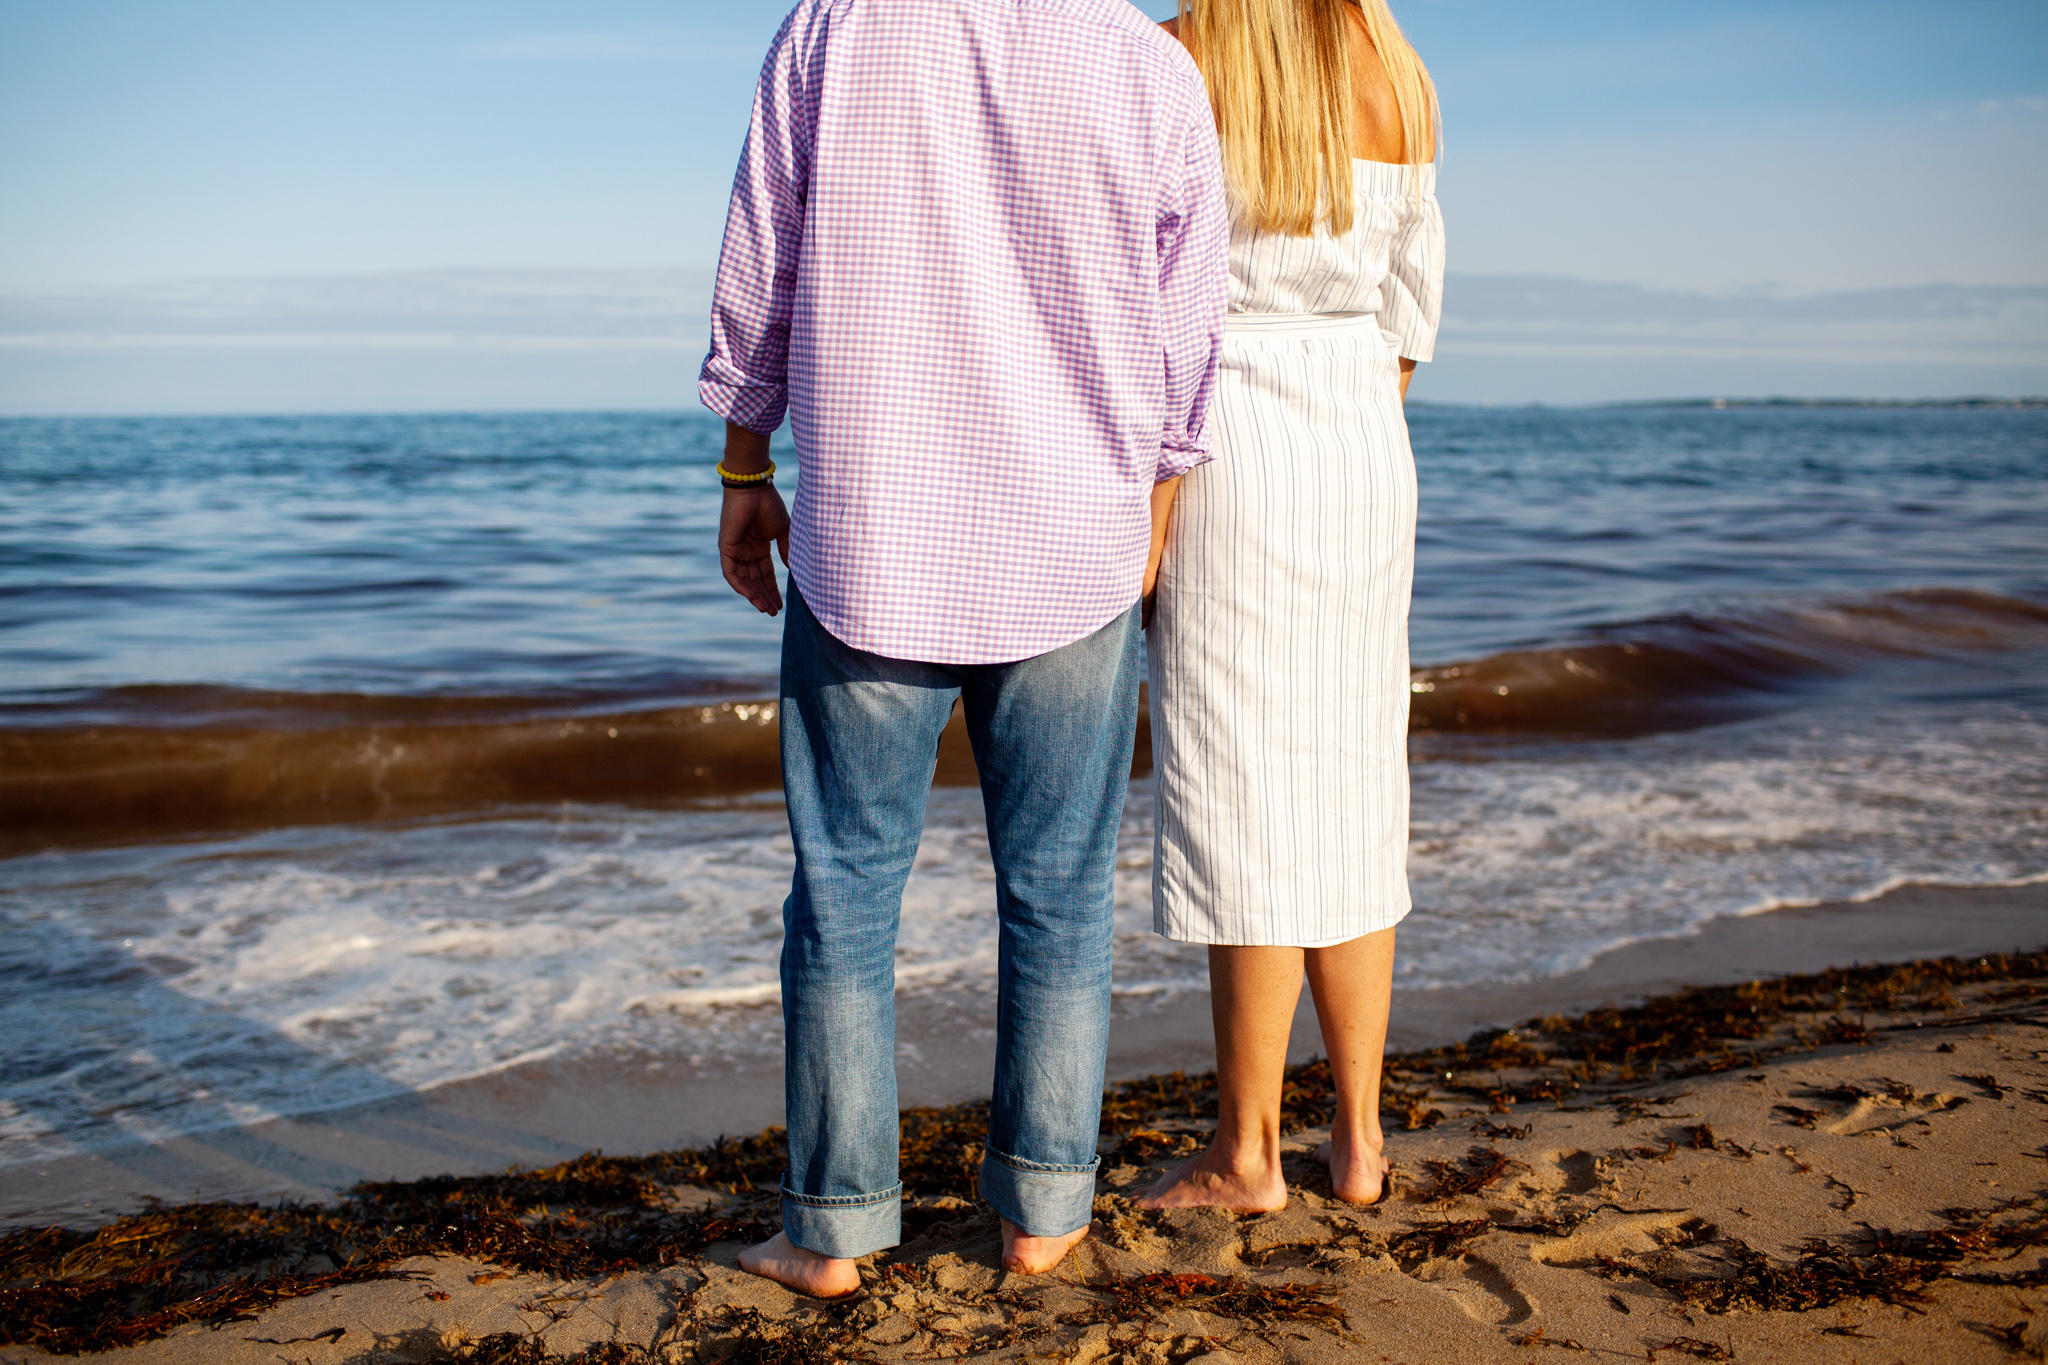 maine-beach-engagement-session-stepheneycollinsphotography-13.jpg